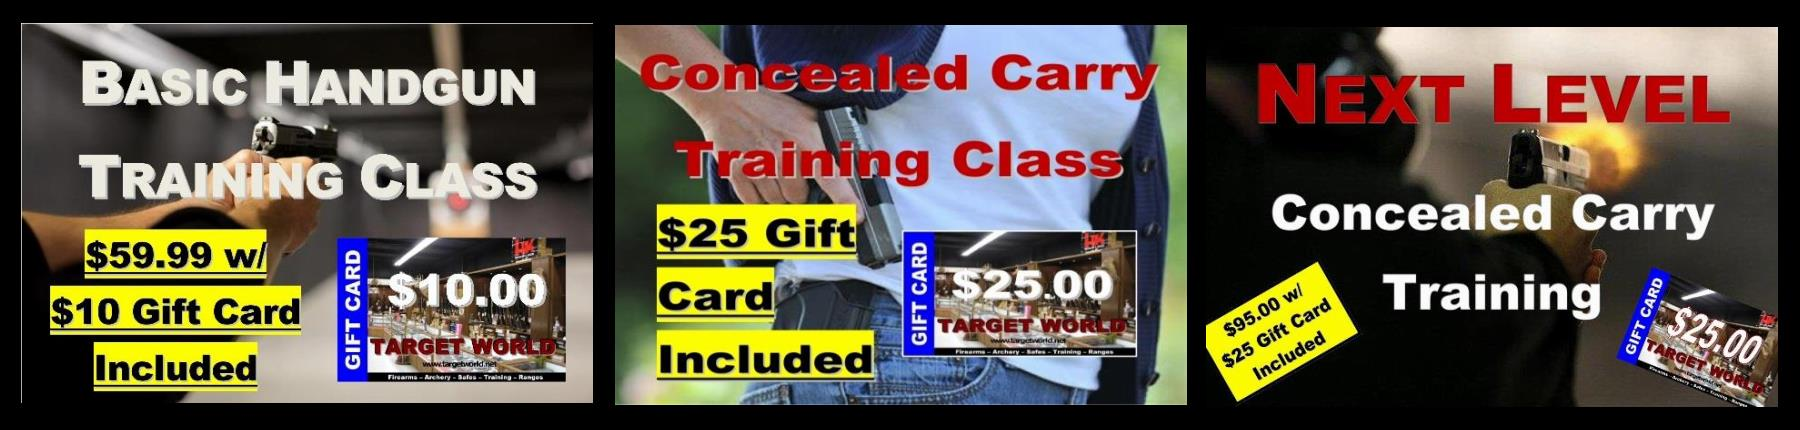 Training Slider (with Gift Cards)